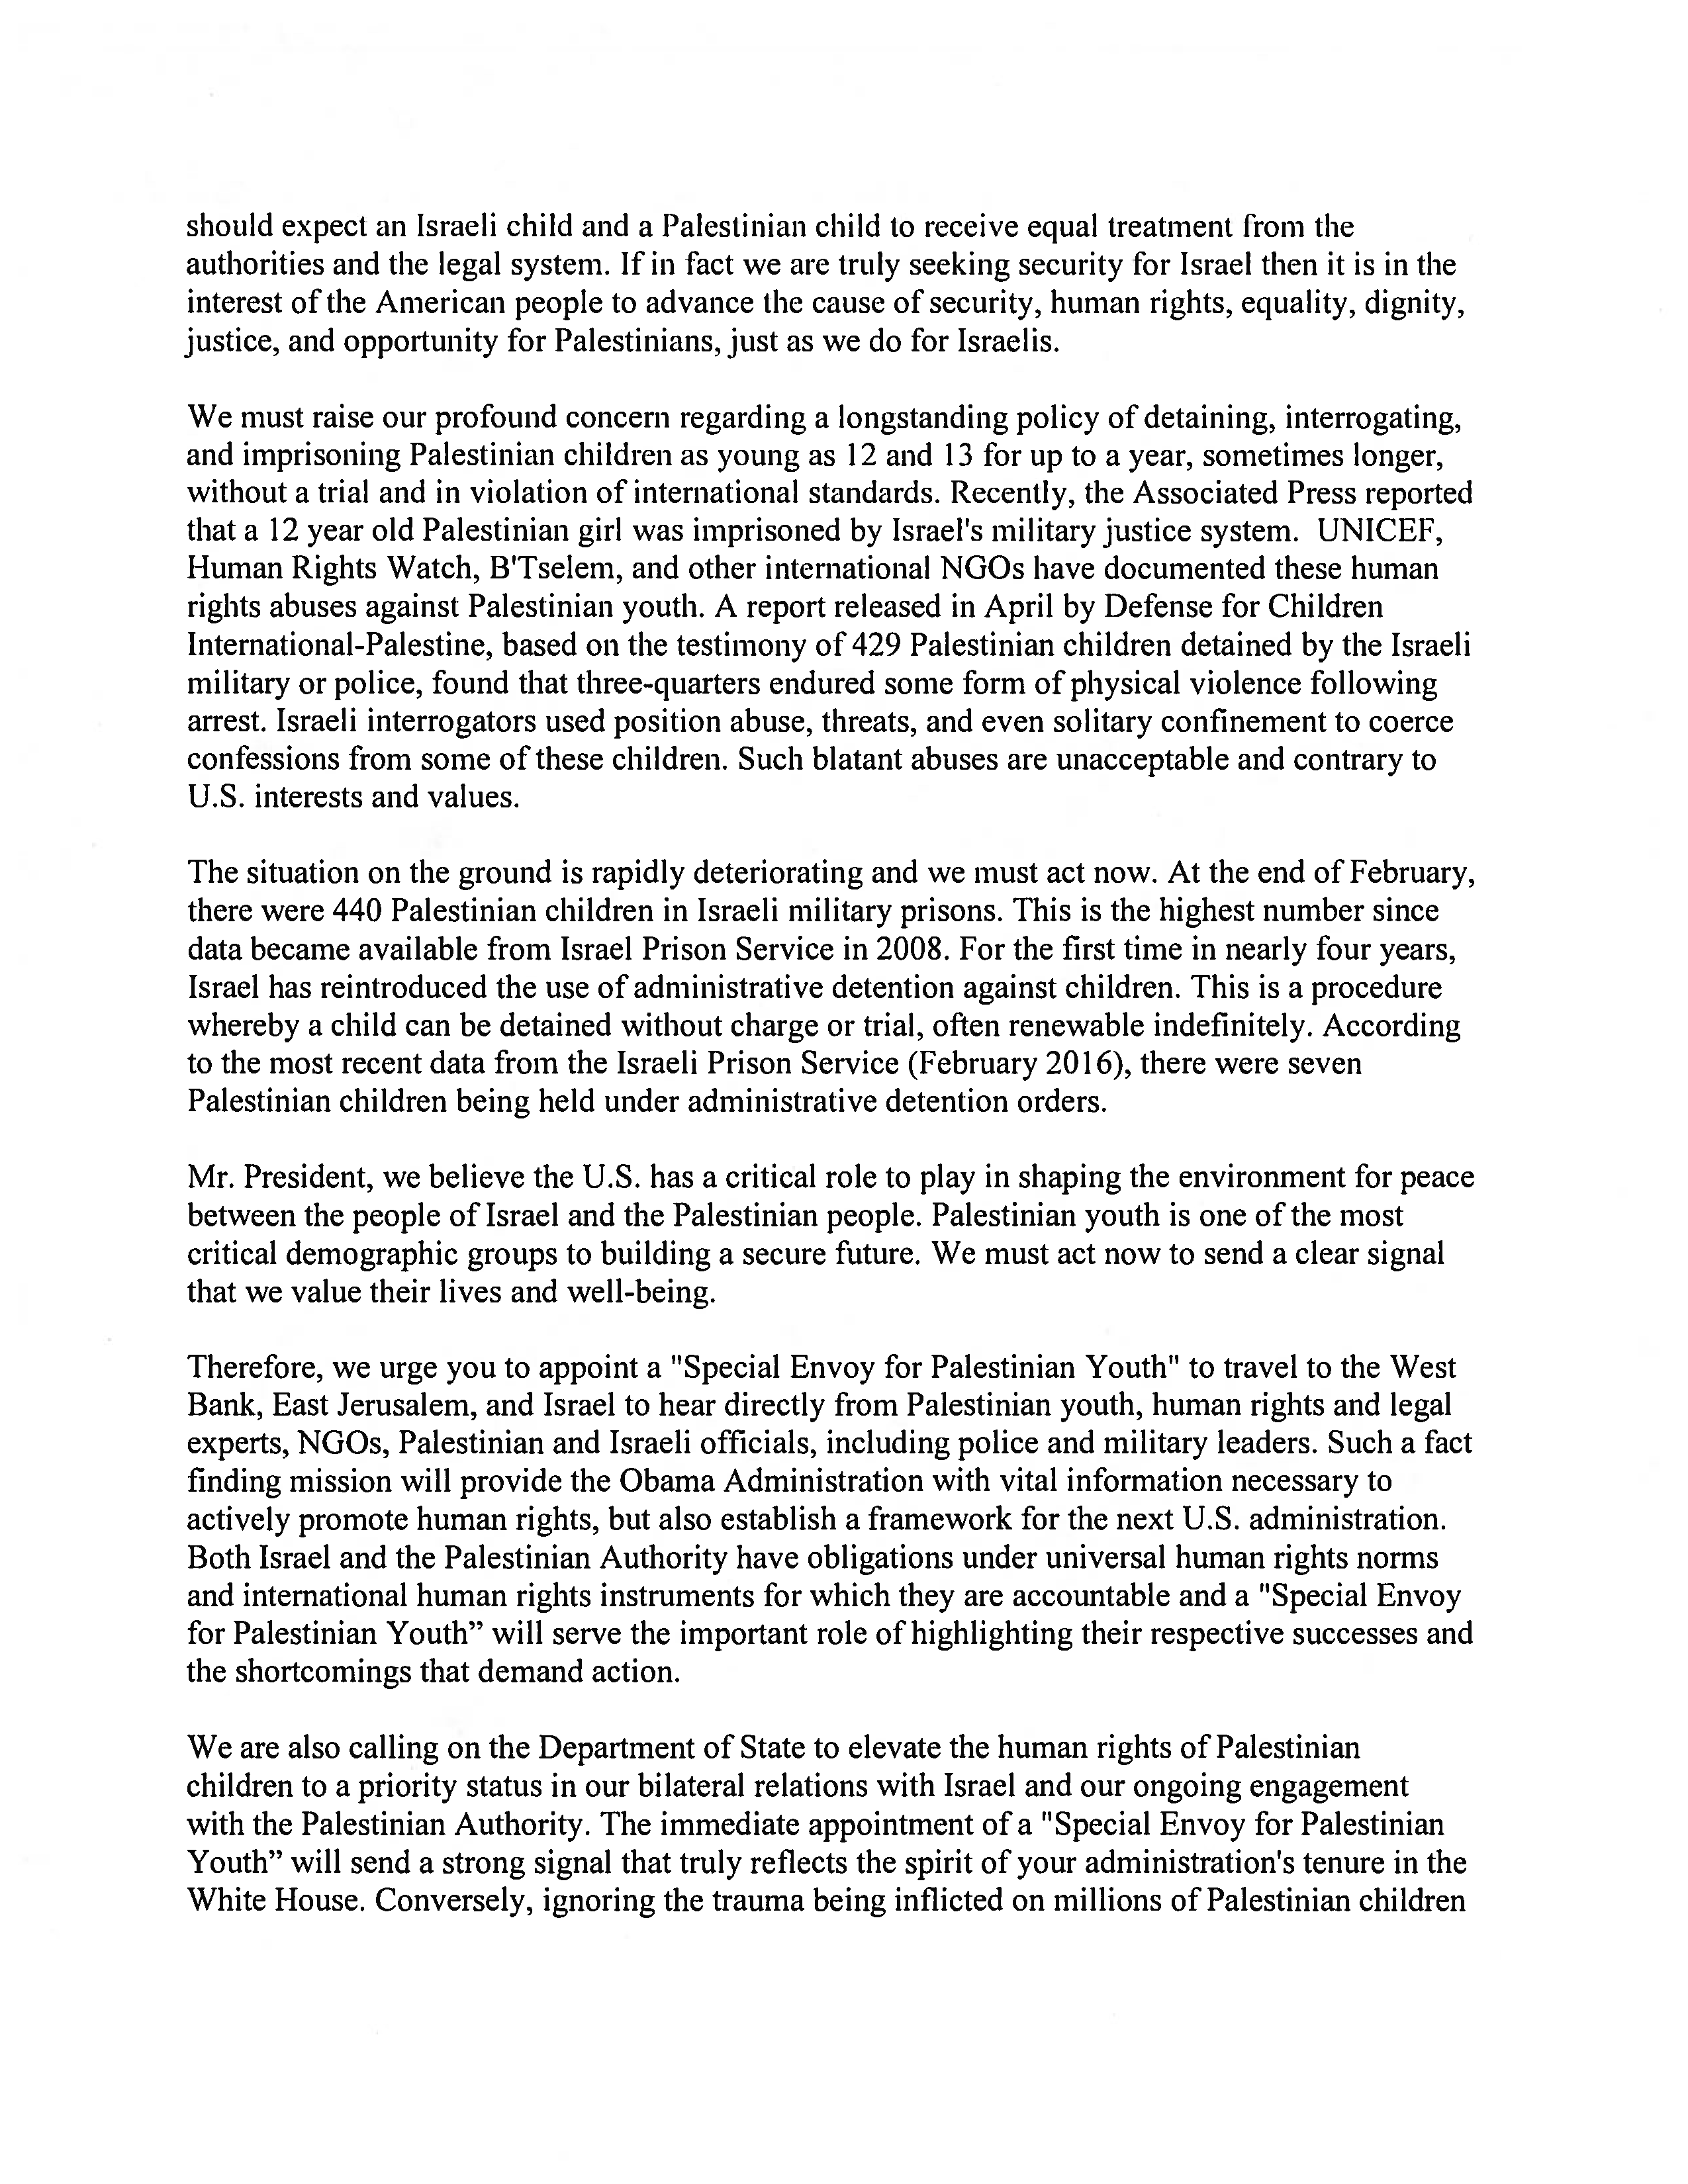 Obama_Special_Envoy_for_Palestinian_Youth_Letter_from_Congress-2.png